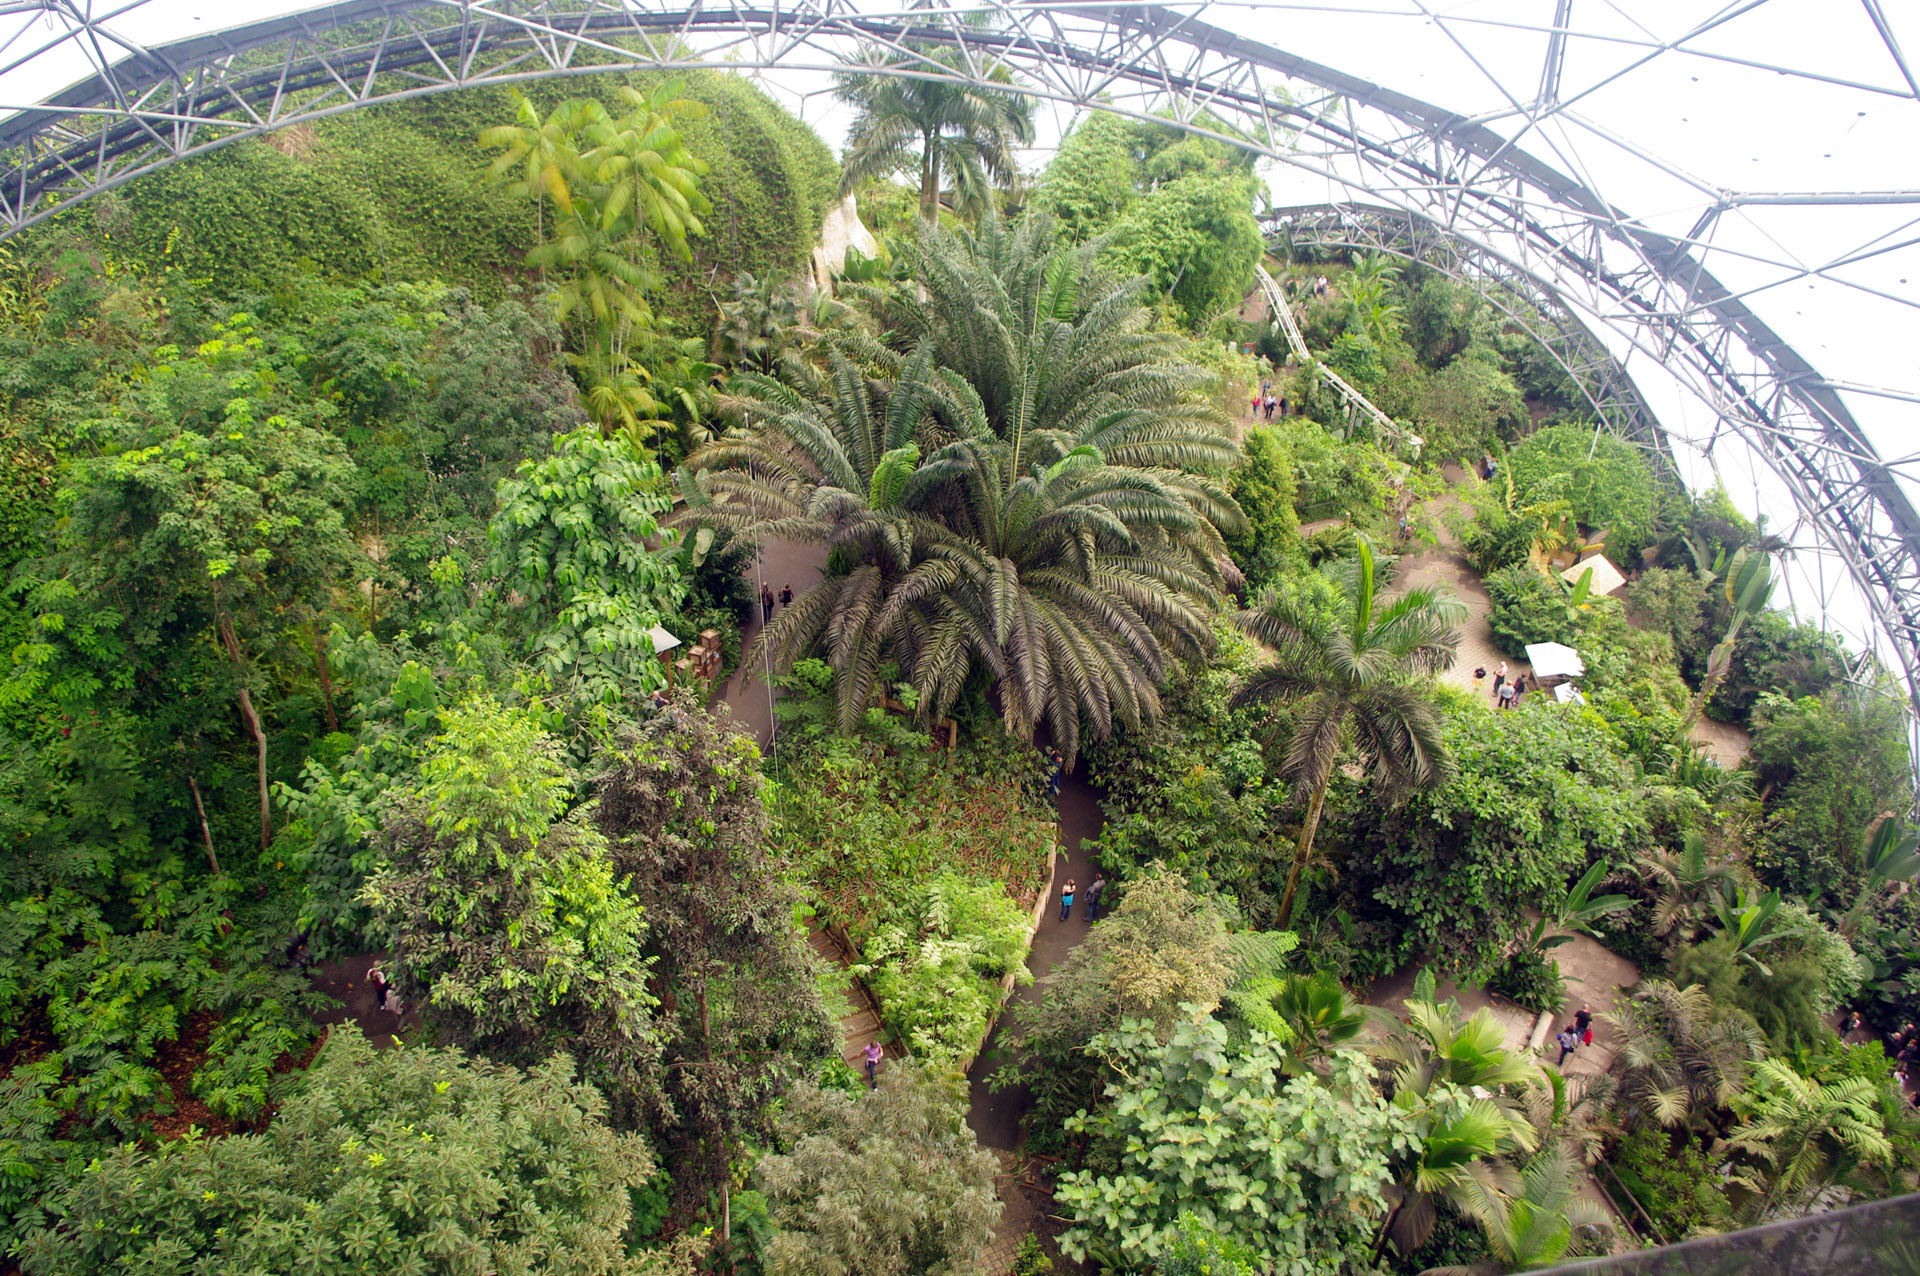 cornwall tropical biome from suspended walkway Eden Project Cornwall